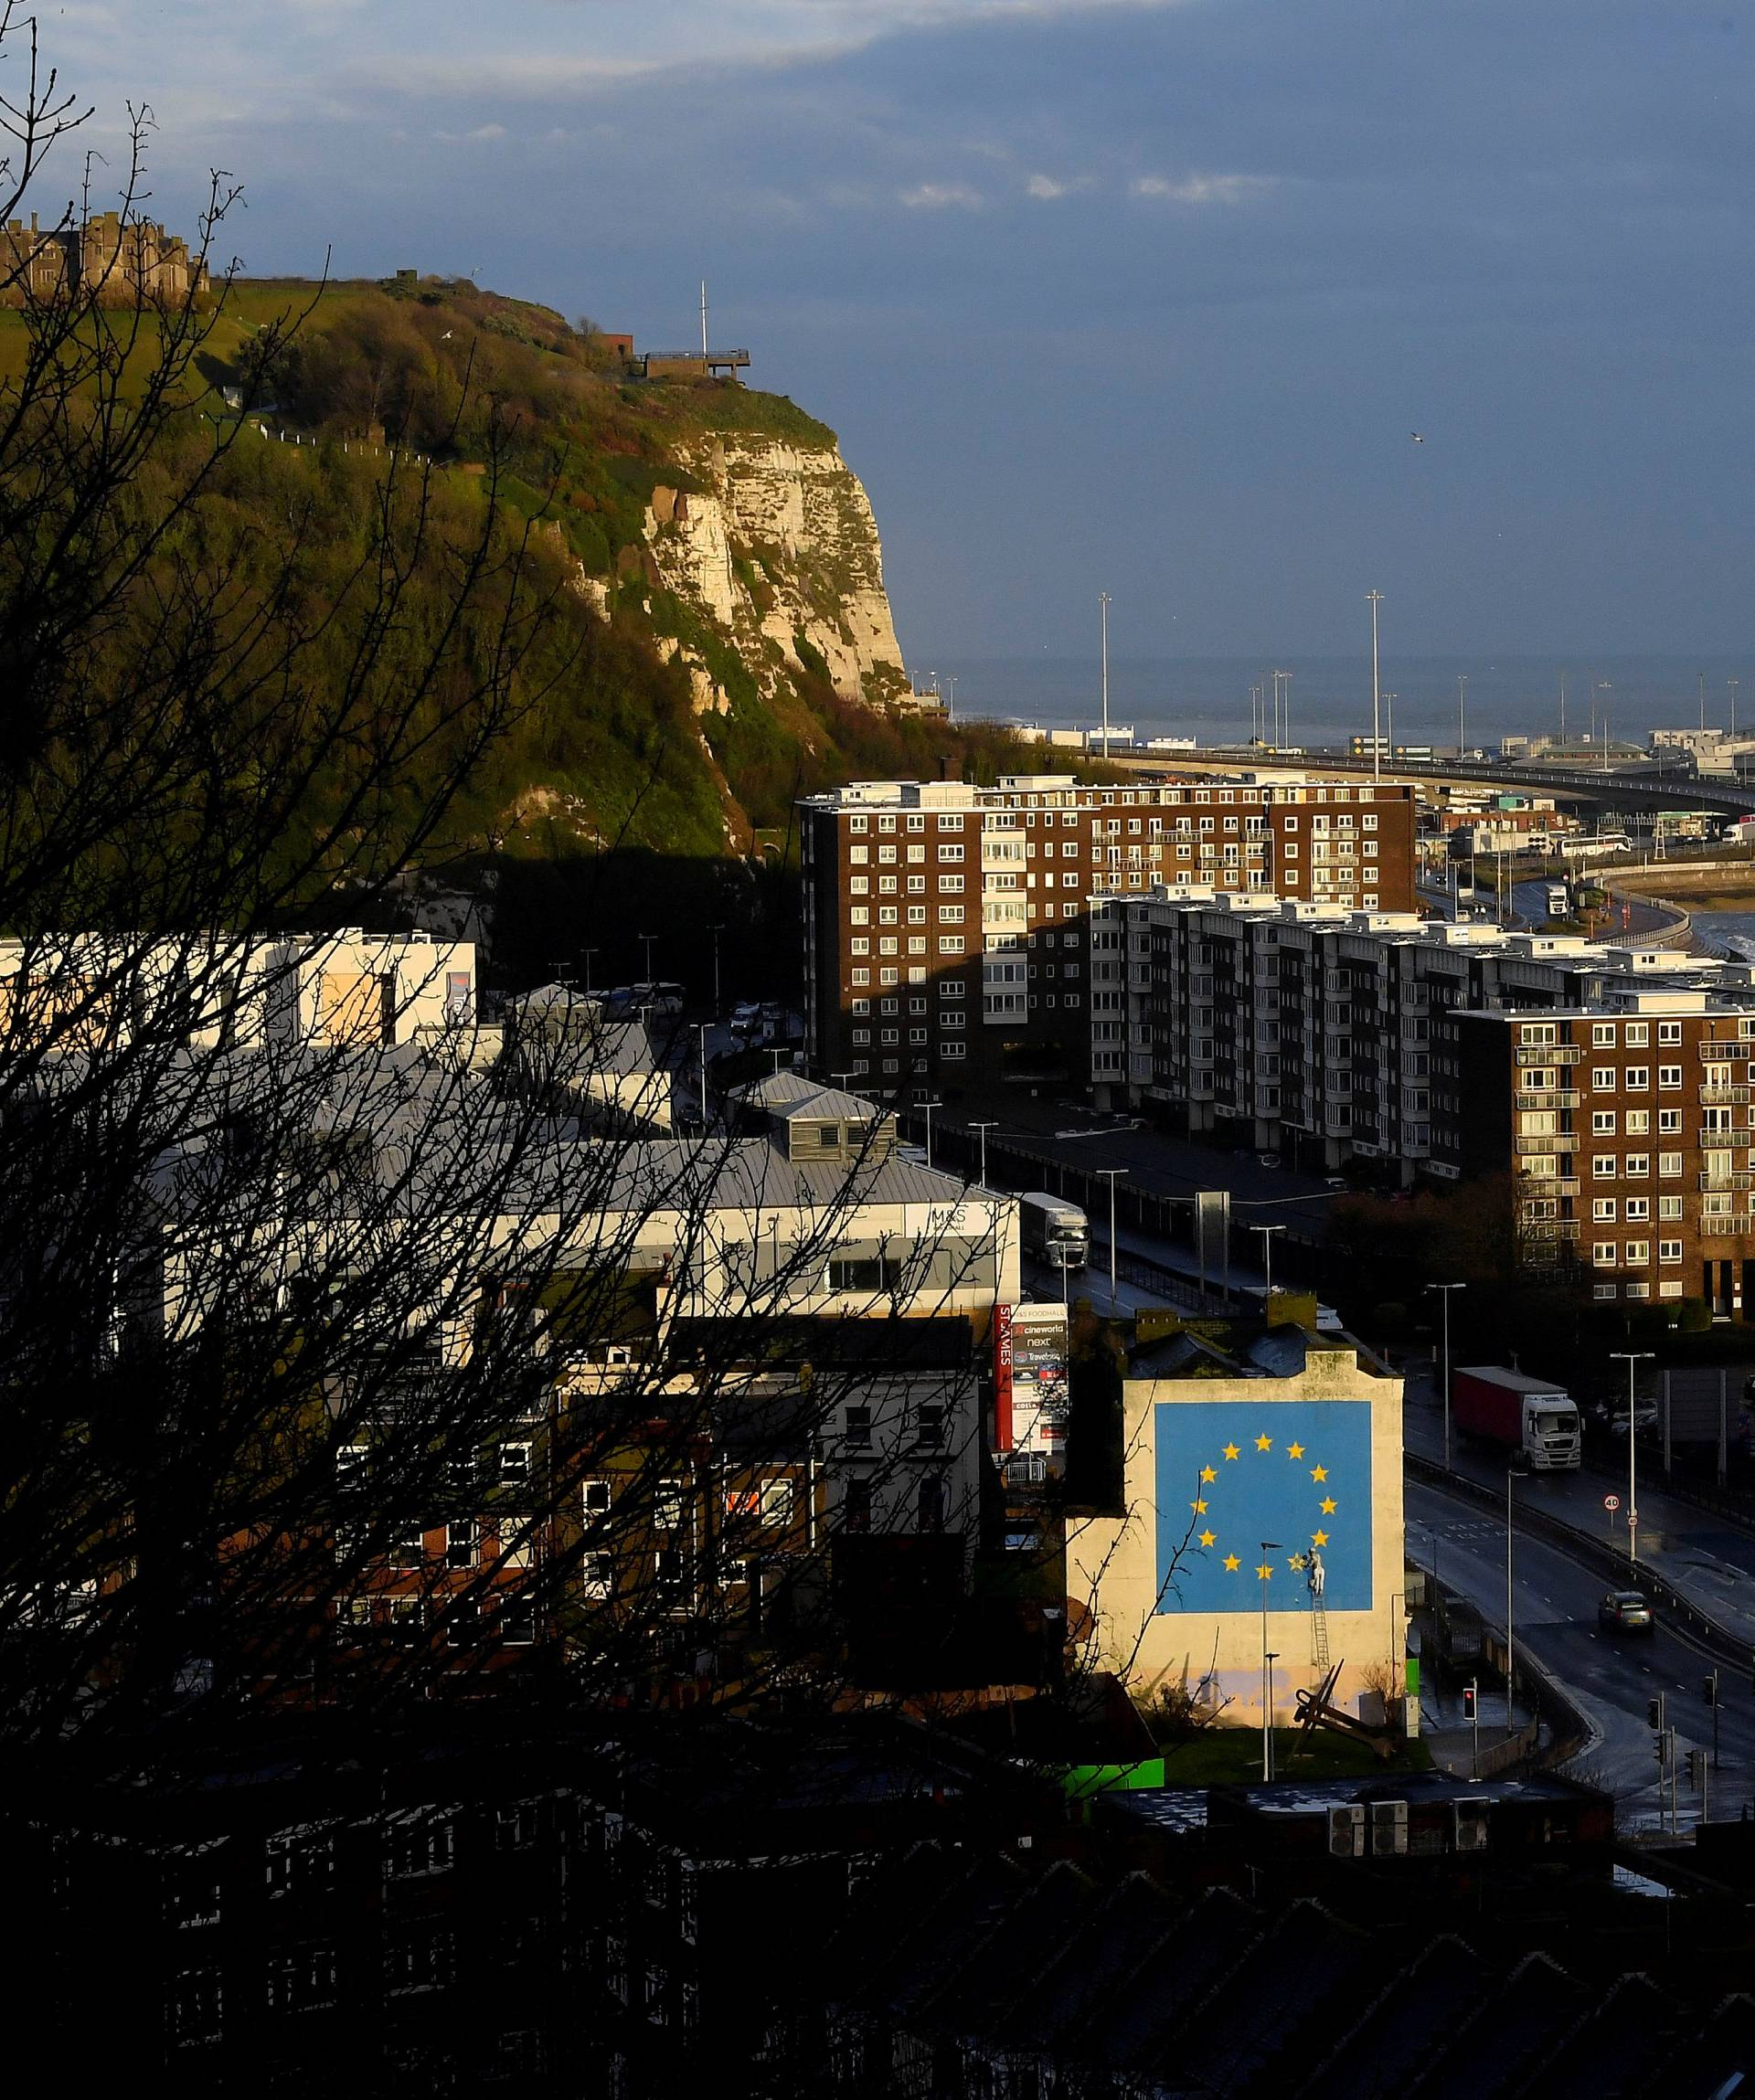 FILE PHOTO: A large mural depicting the EU flag being chipped away and attributed to the British artist Banksy is seen at the Port of Dover in south east Britain